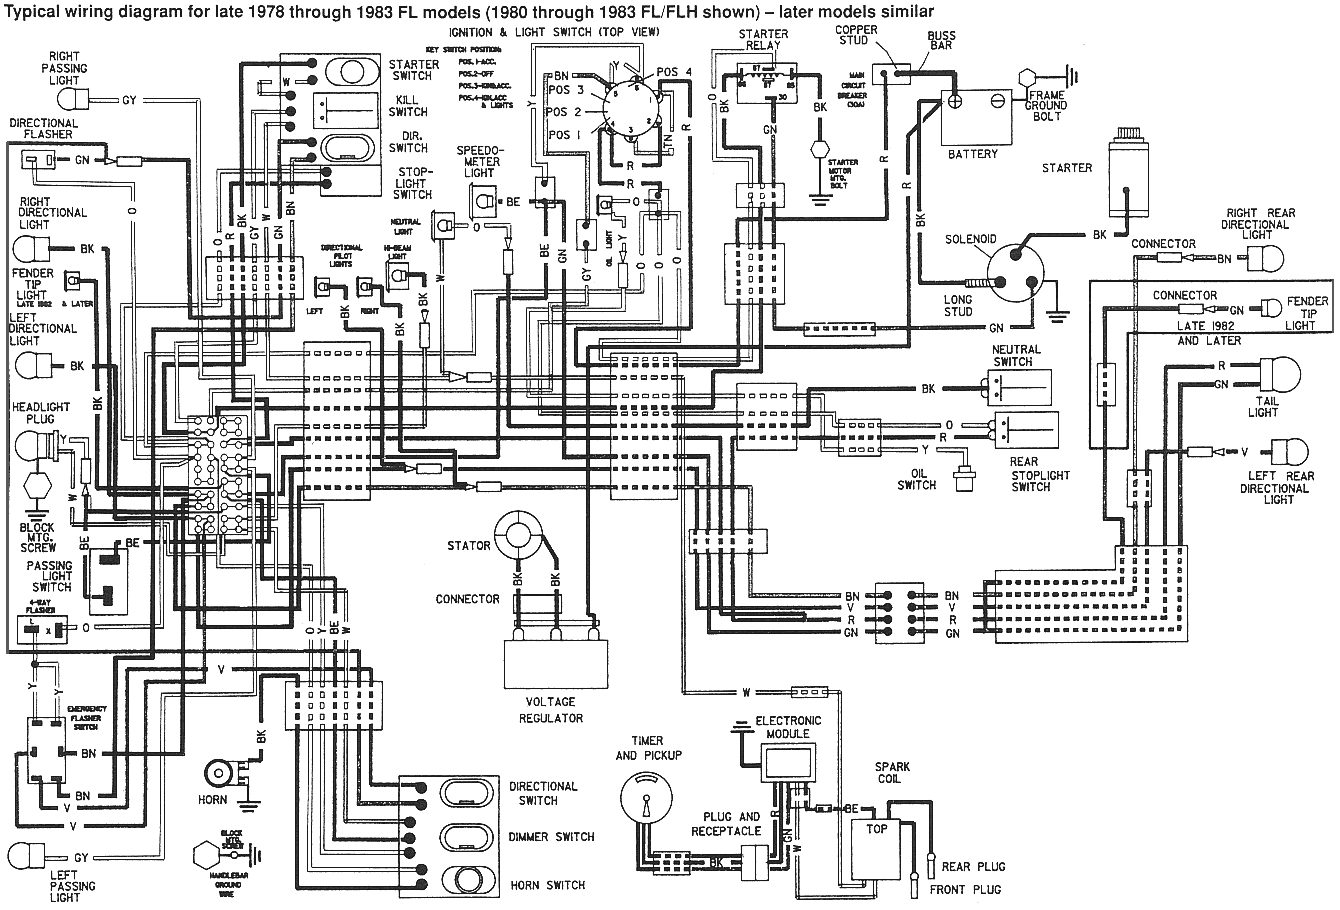 wiring diagram for harley davidson softail Download-2001 harley sportster 1200 wiring diagram wire center u2022 rh silaiwala co 2002 Sportster Custom Harley Davidson XL 1200 Sportster 16-j